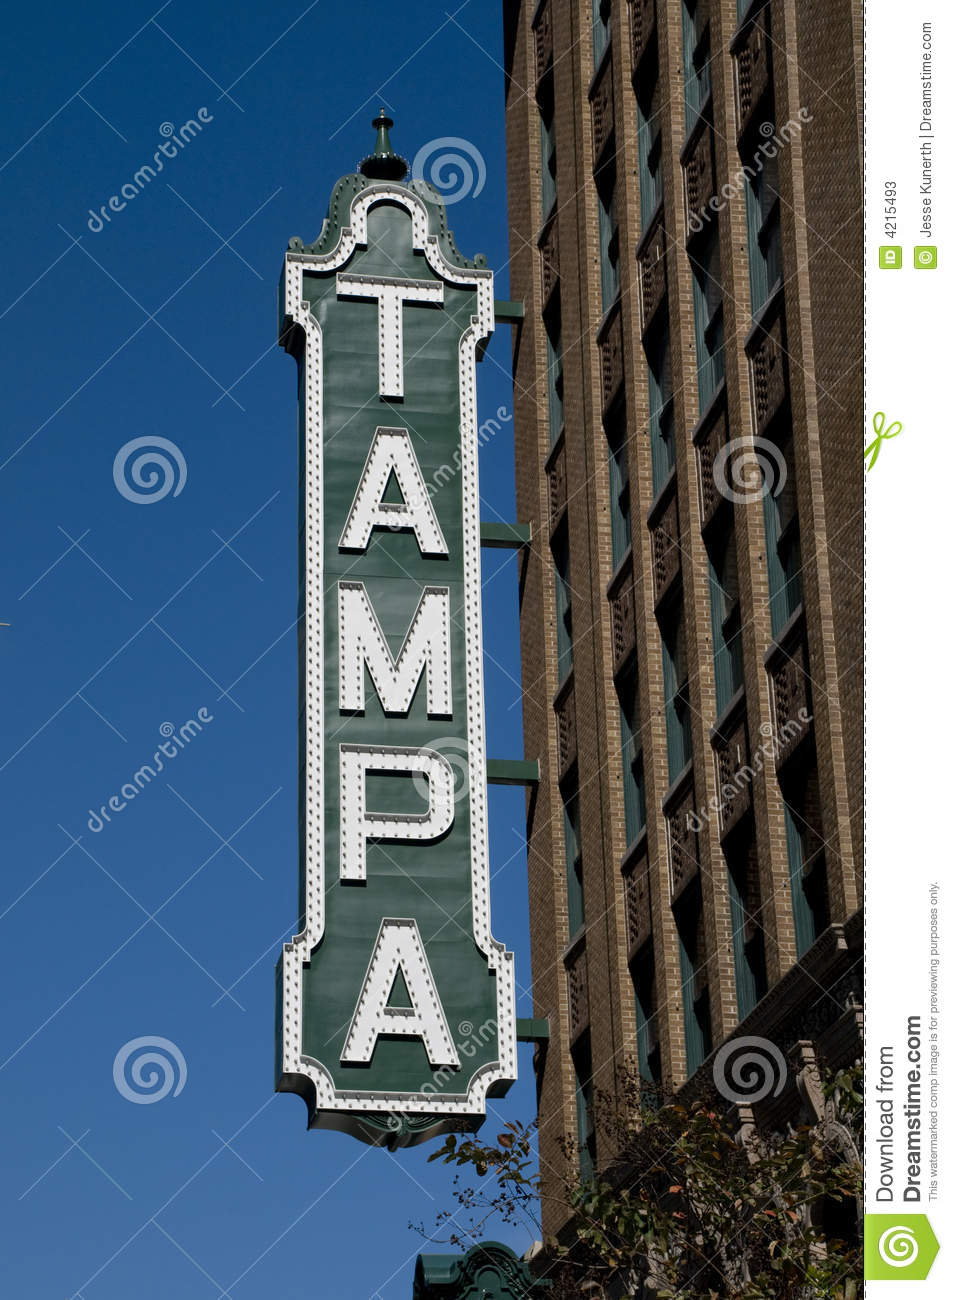 Tampa Sign stock image  Image of daylight, letters, trees - 4215493